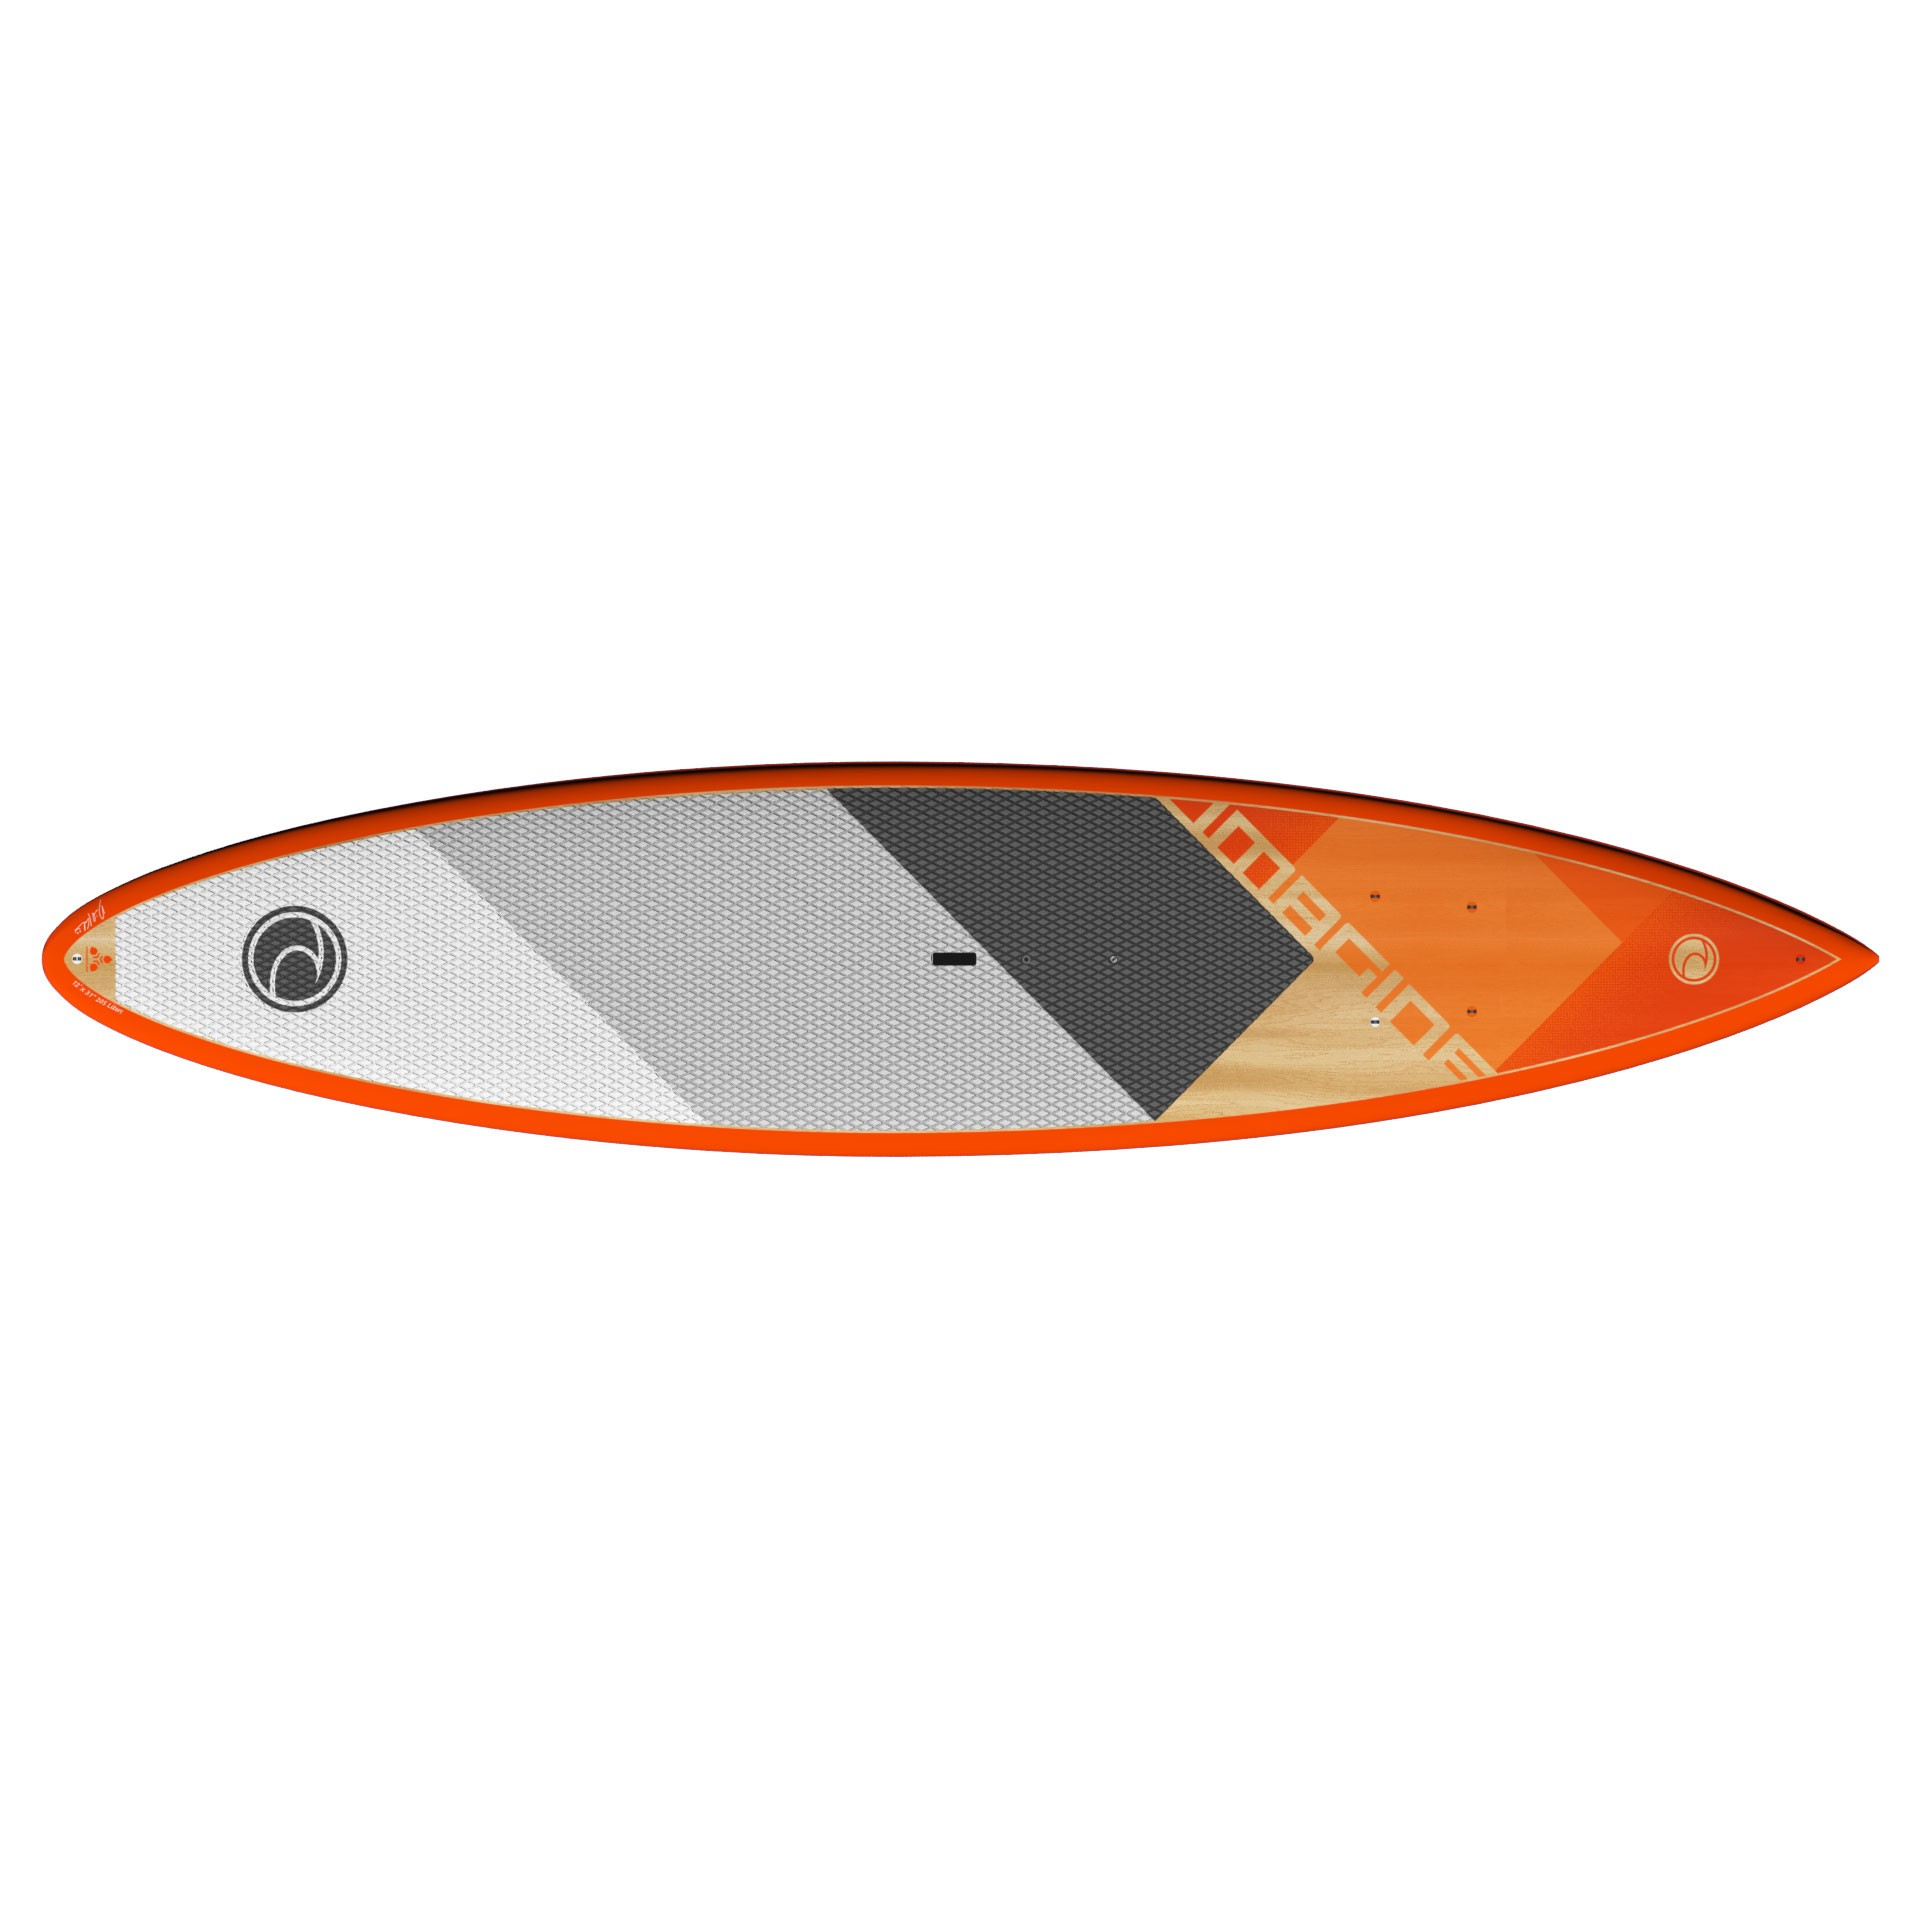 "Imagine Crossover Wood Composite SUP 10'6"", 11', 12'"